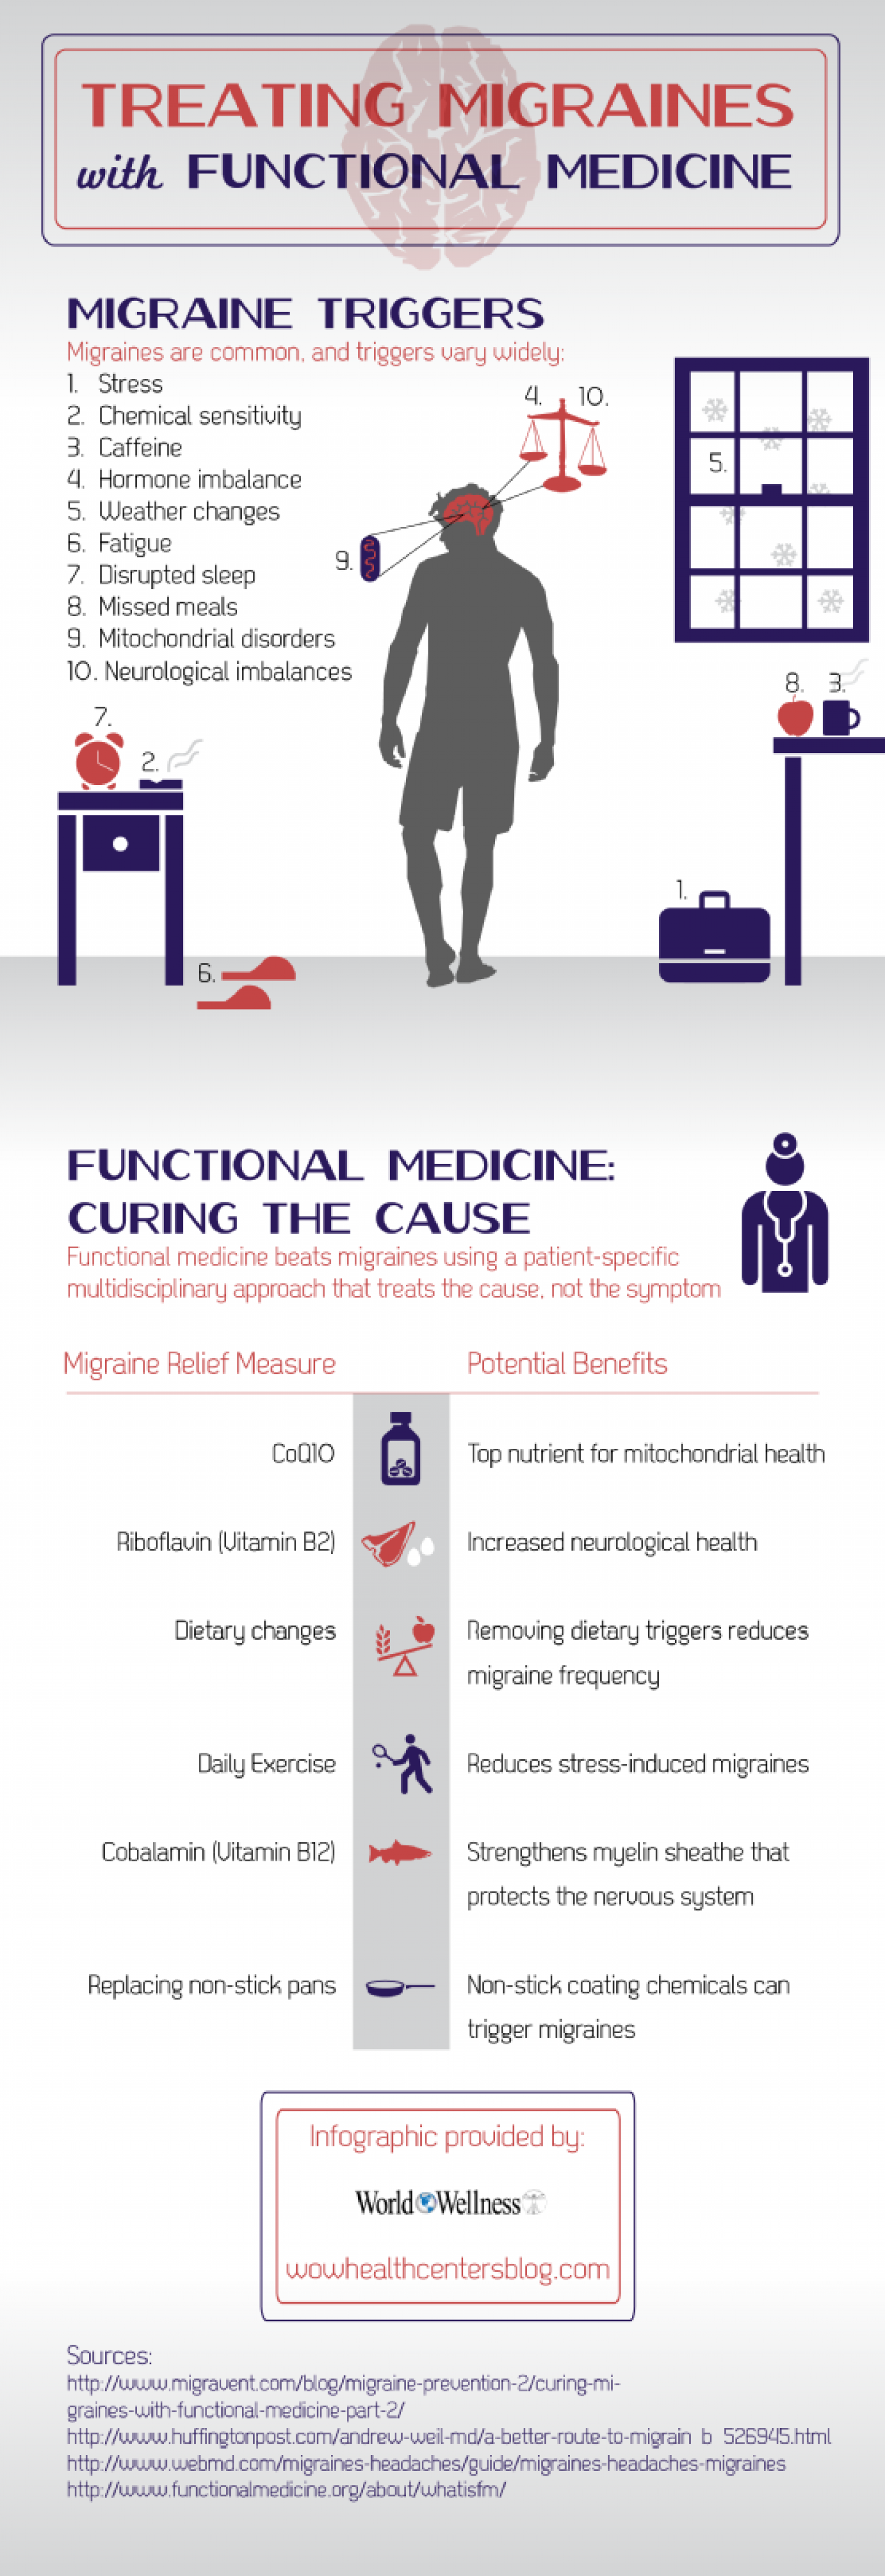 Treating Migraines with Functional Medicine Infographic